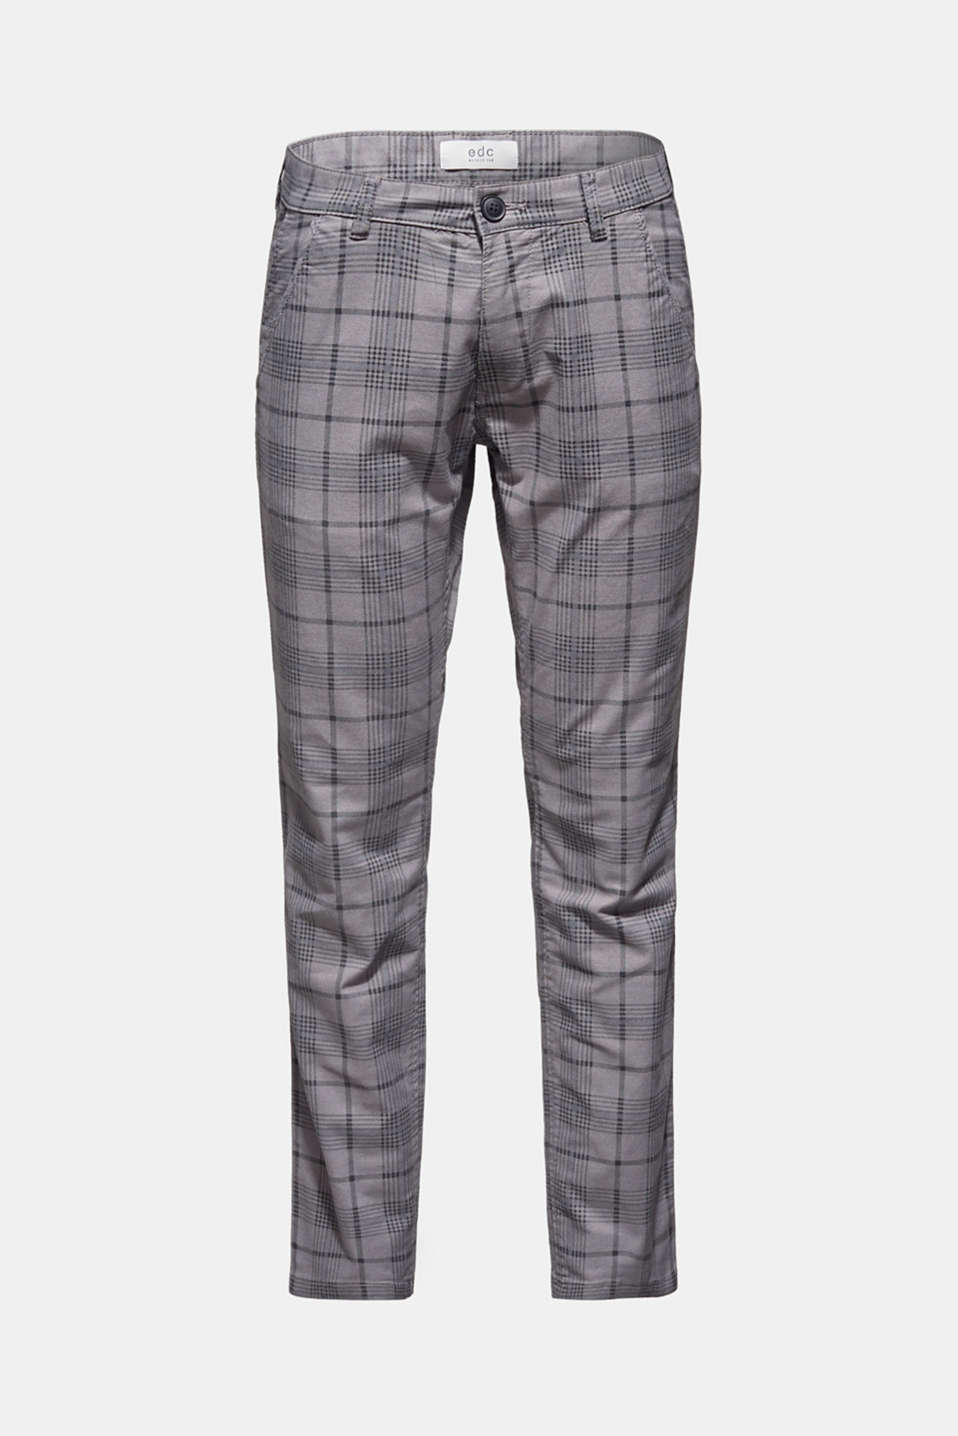 Stretch trousers with a checked pattern, DARK GREY, detail image number 7